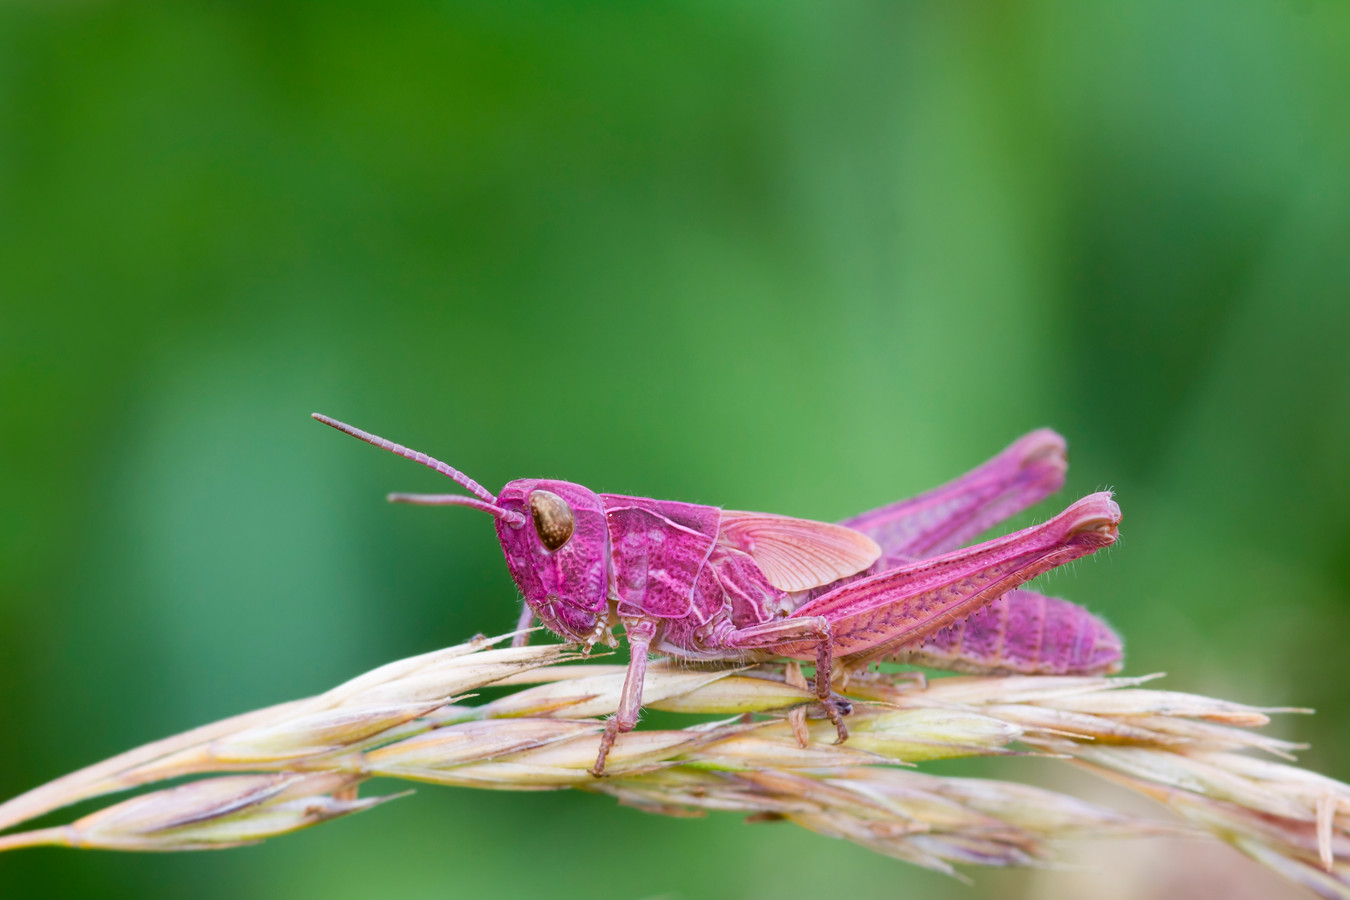 Pink Grasshopper perched on a grass stem closeup roze sprinkhaan